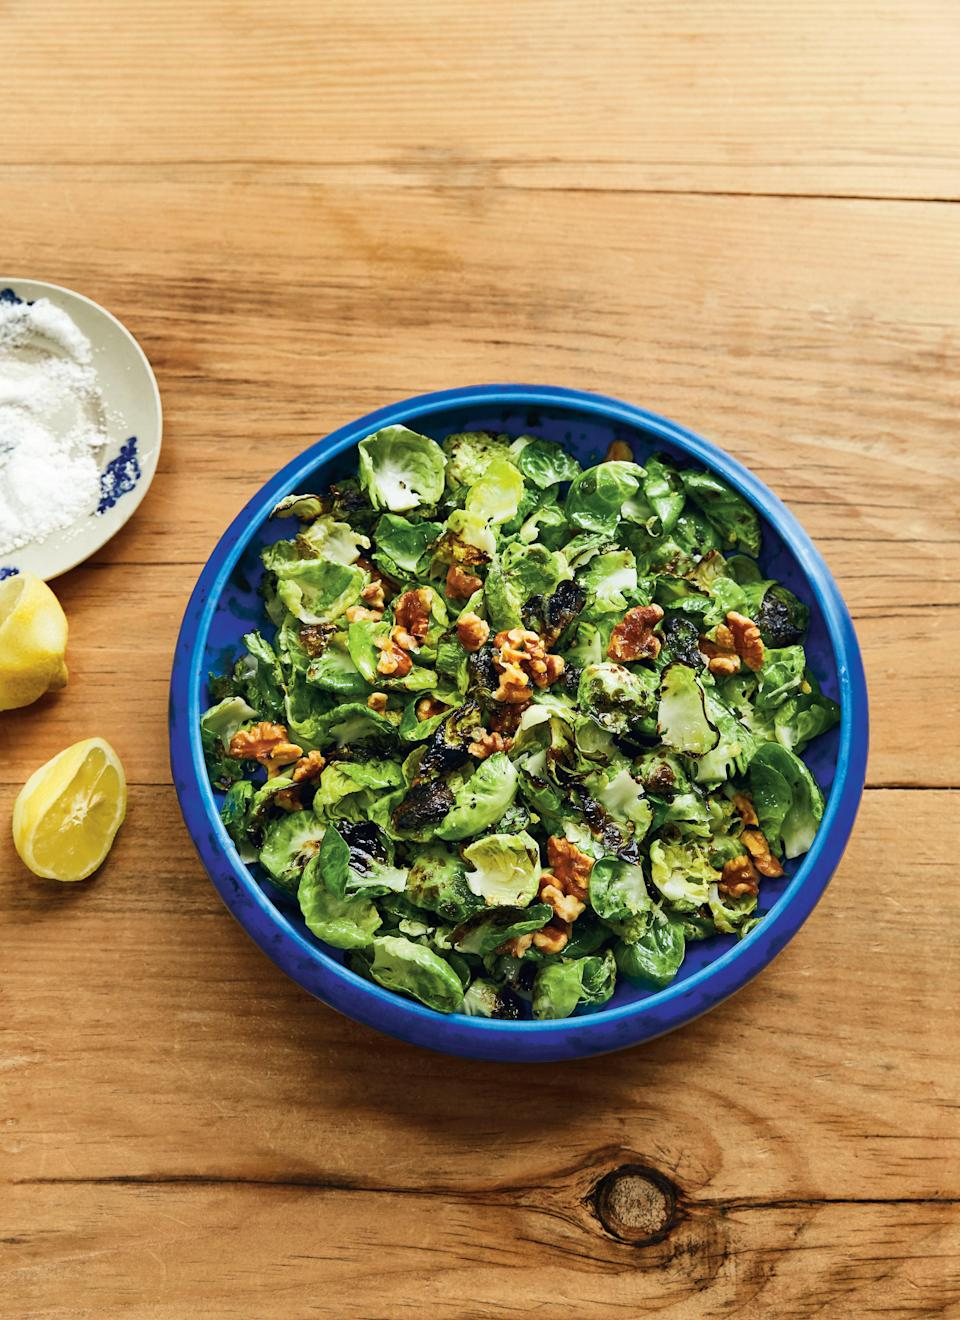 """Separating the leaves of each tiny cabbage may sound tedious, but you'll be crowned a true hero once your crowd gets a taste of the sweetest, tender-crisp brussels sprouts they've ever had. <a href=""""https://www.bonappetit.com/recipe/stir-fried-brussels-sprouts?mbid=synd_yahoo_rss"""" rel=""""nofollow noopener"""" target=""""_blank"""" data-ylk=""""slk:See recipe."""" class=""""link rapid-noclick-resp"""">See recipe.</a>"""